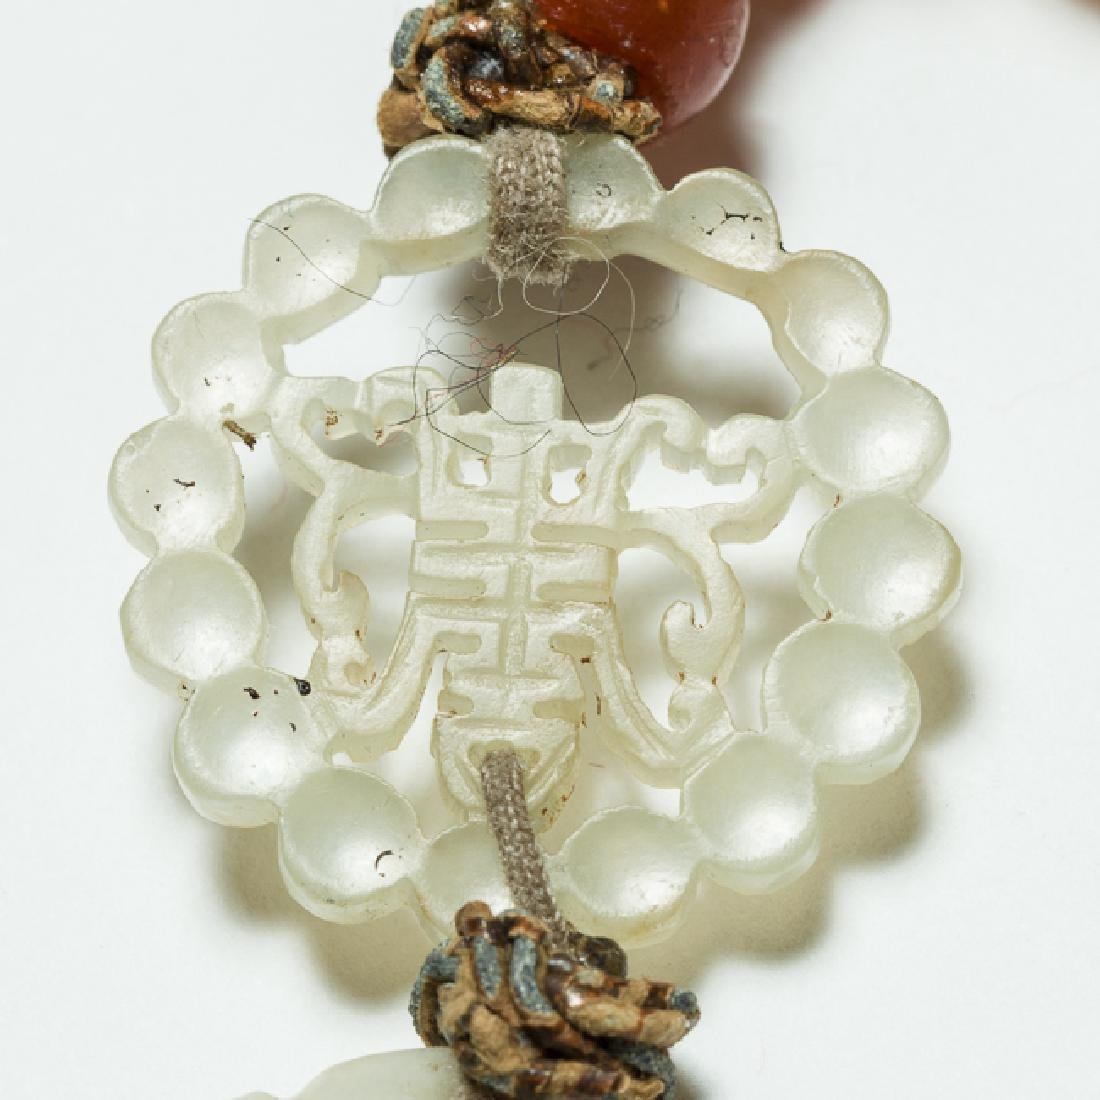 Chinese Antique Pearl Prayer Beads, 19th Century - 5